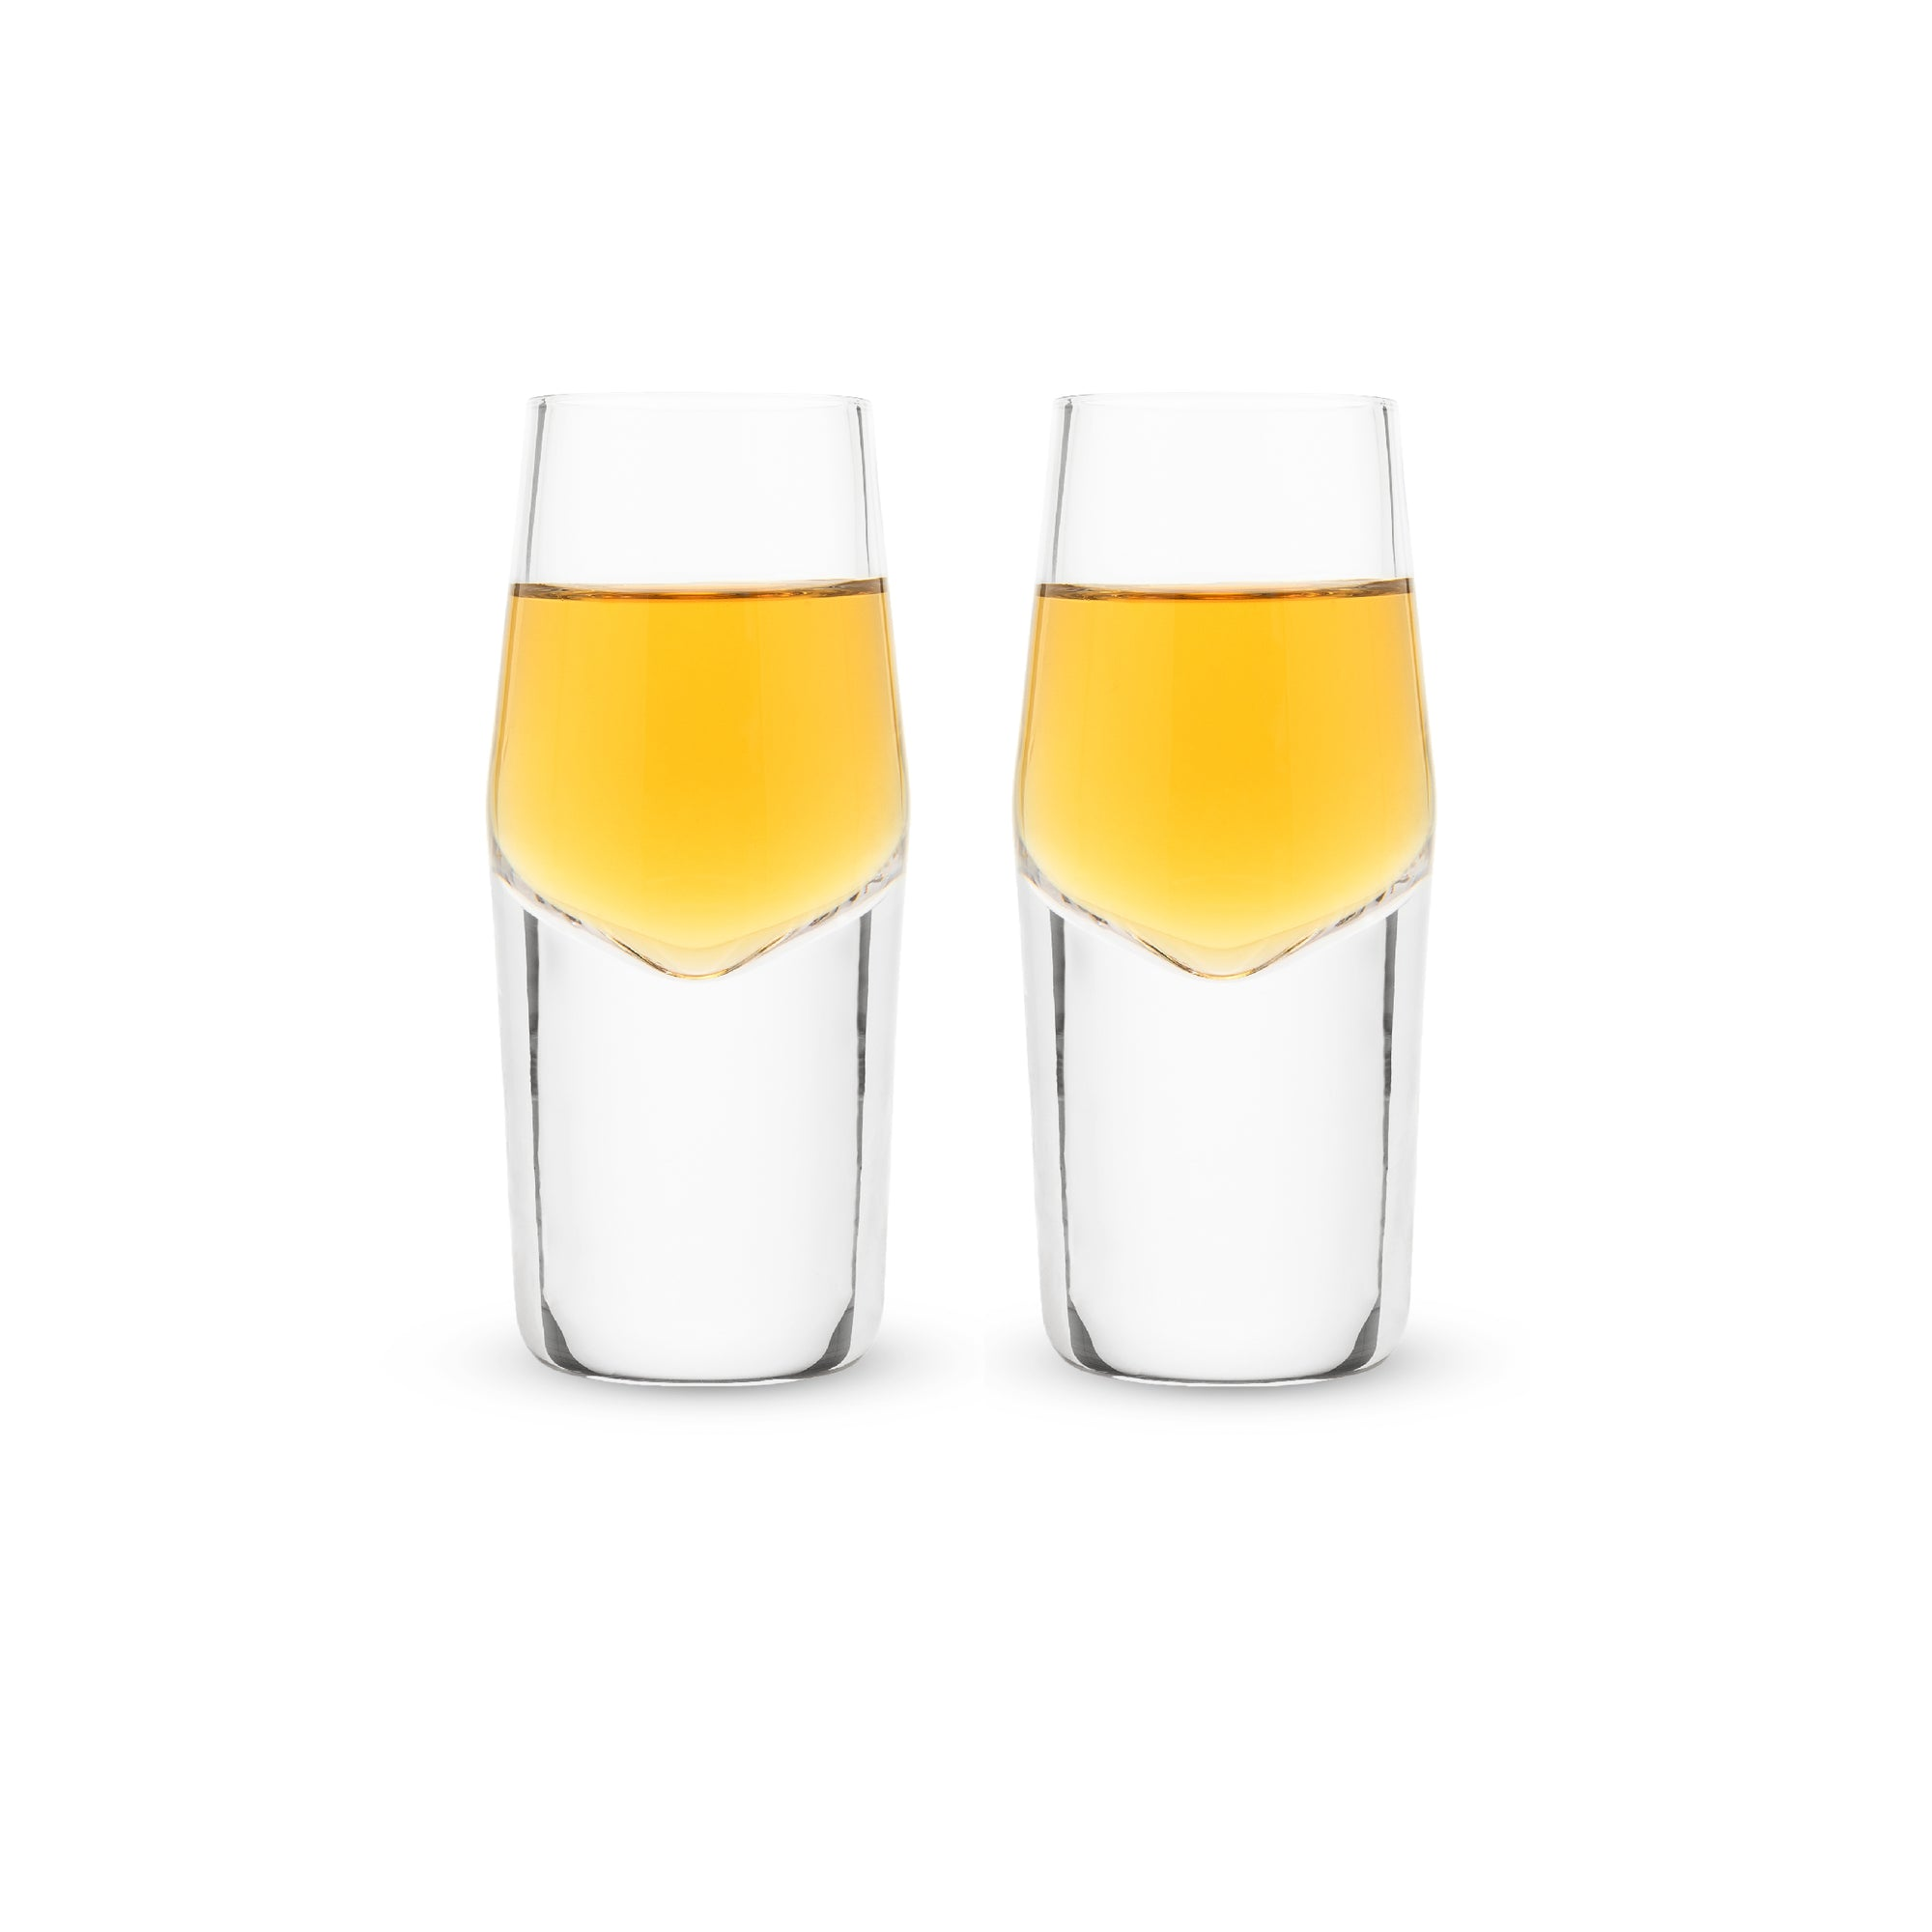 Raye™ - Heavyweight Crystal Shot Glasses (Set of 2)